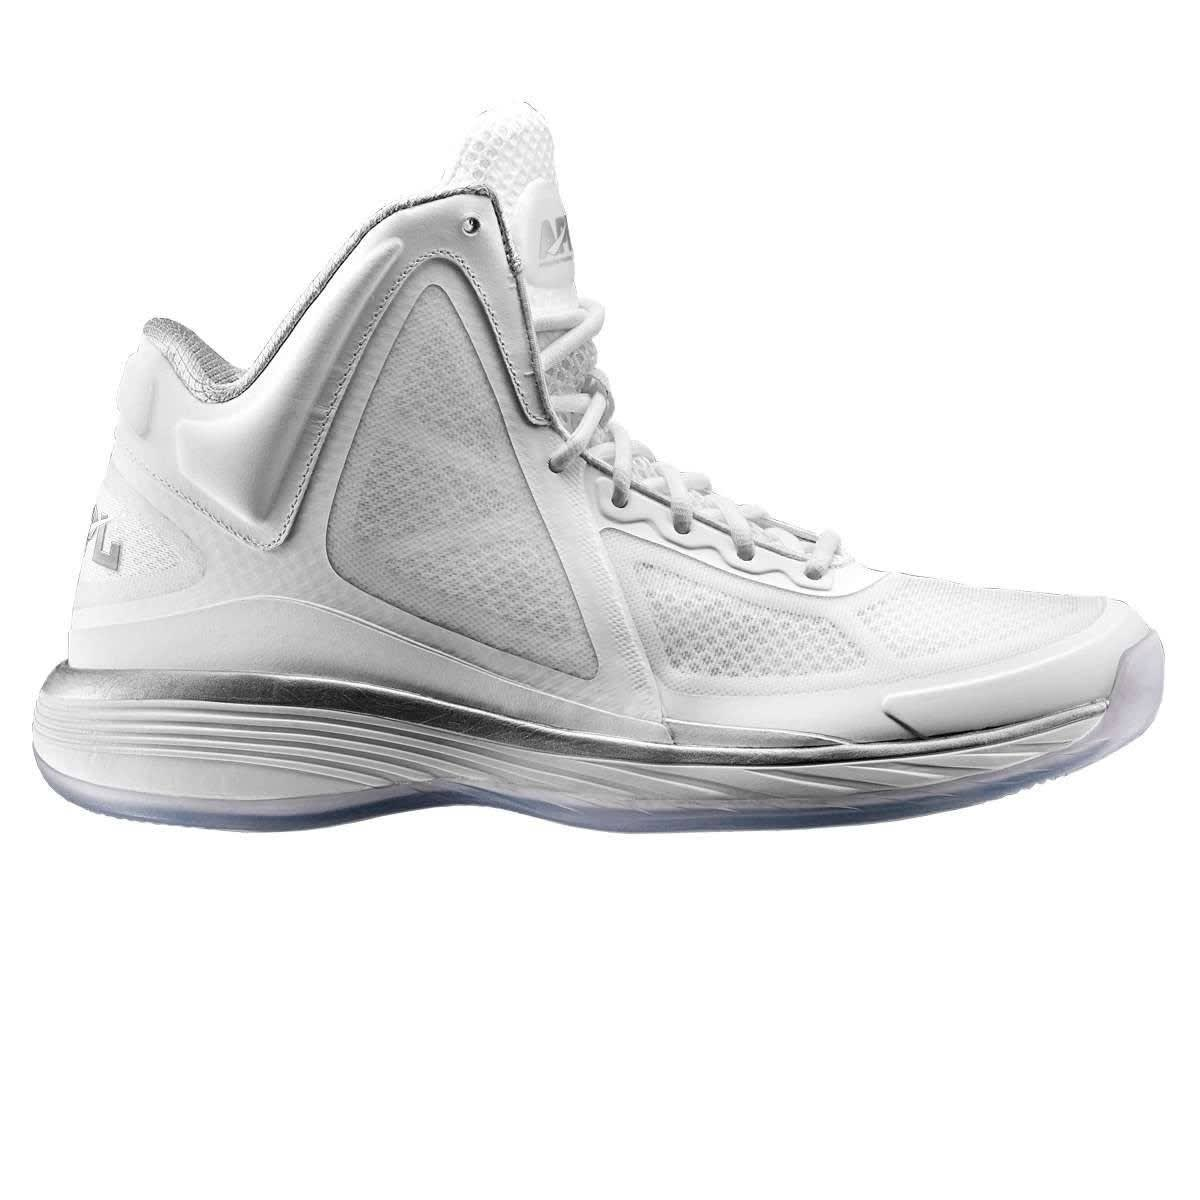 64206dfb2b53 ... APL Concept 3 Athletic Propulsion Labs Sole Collector ...